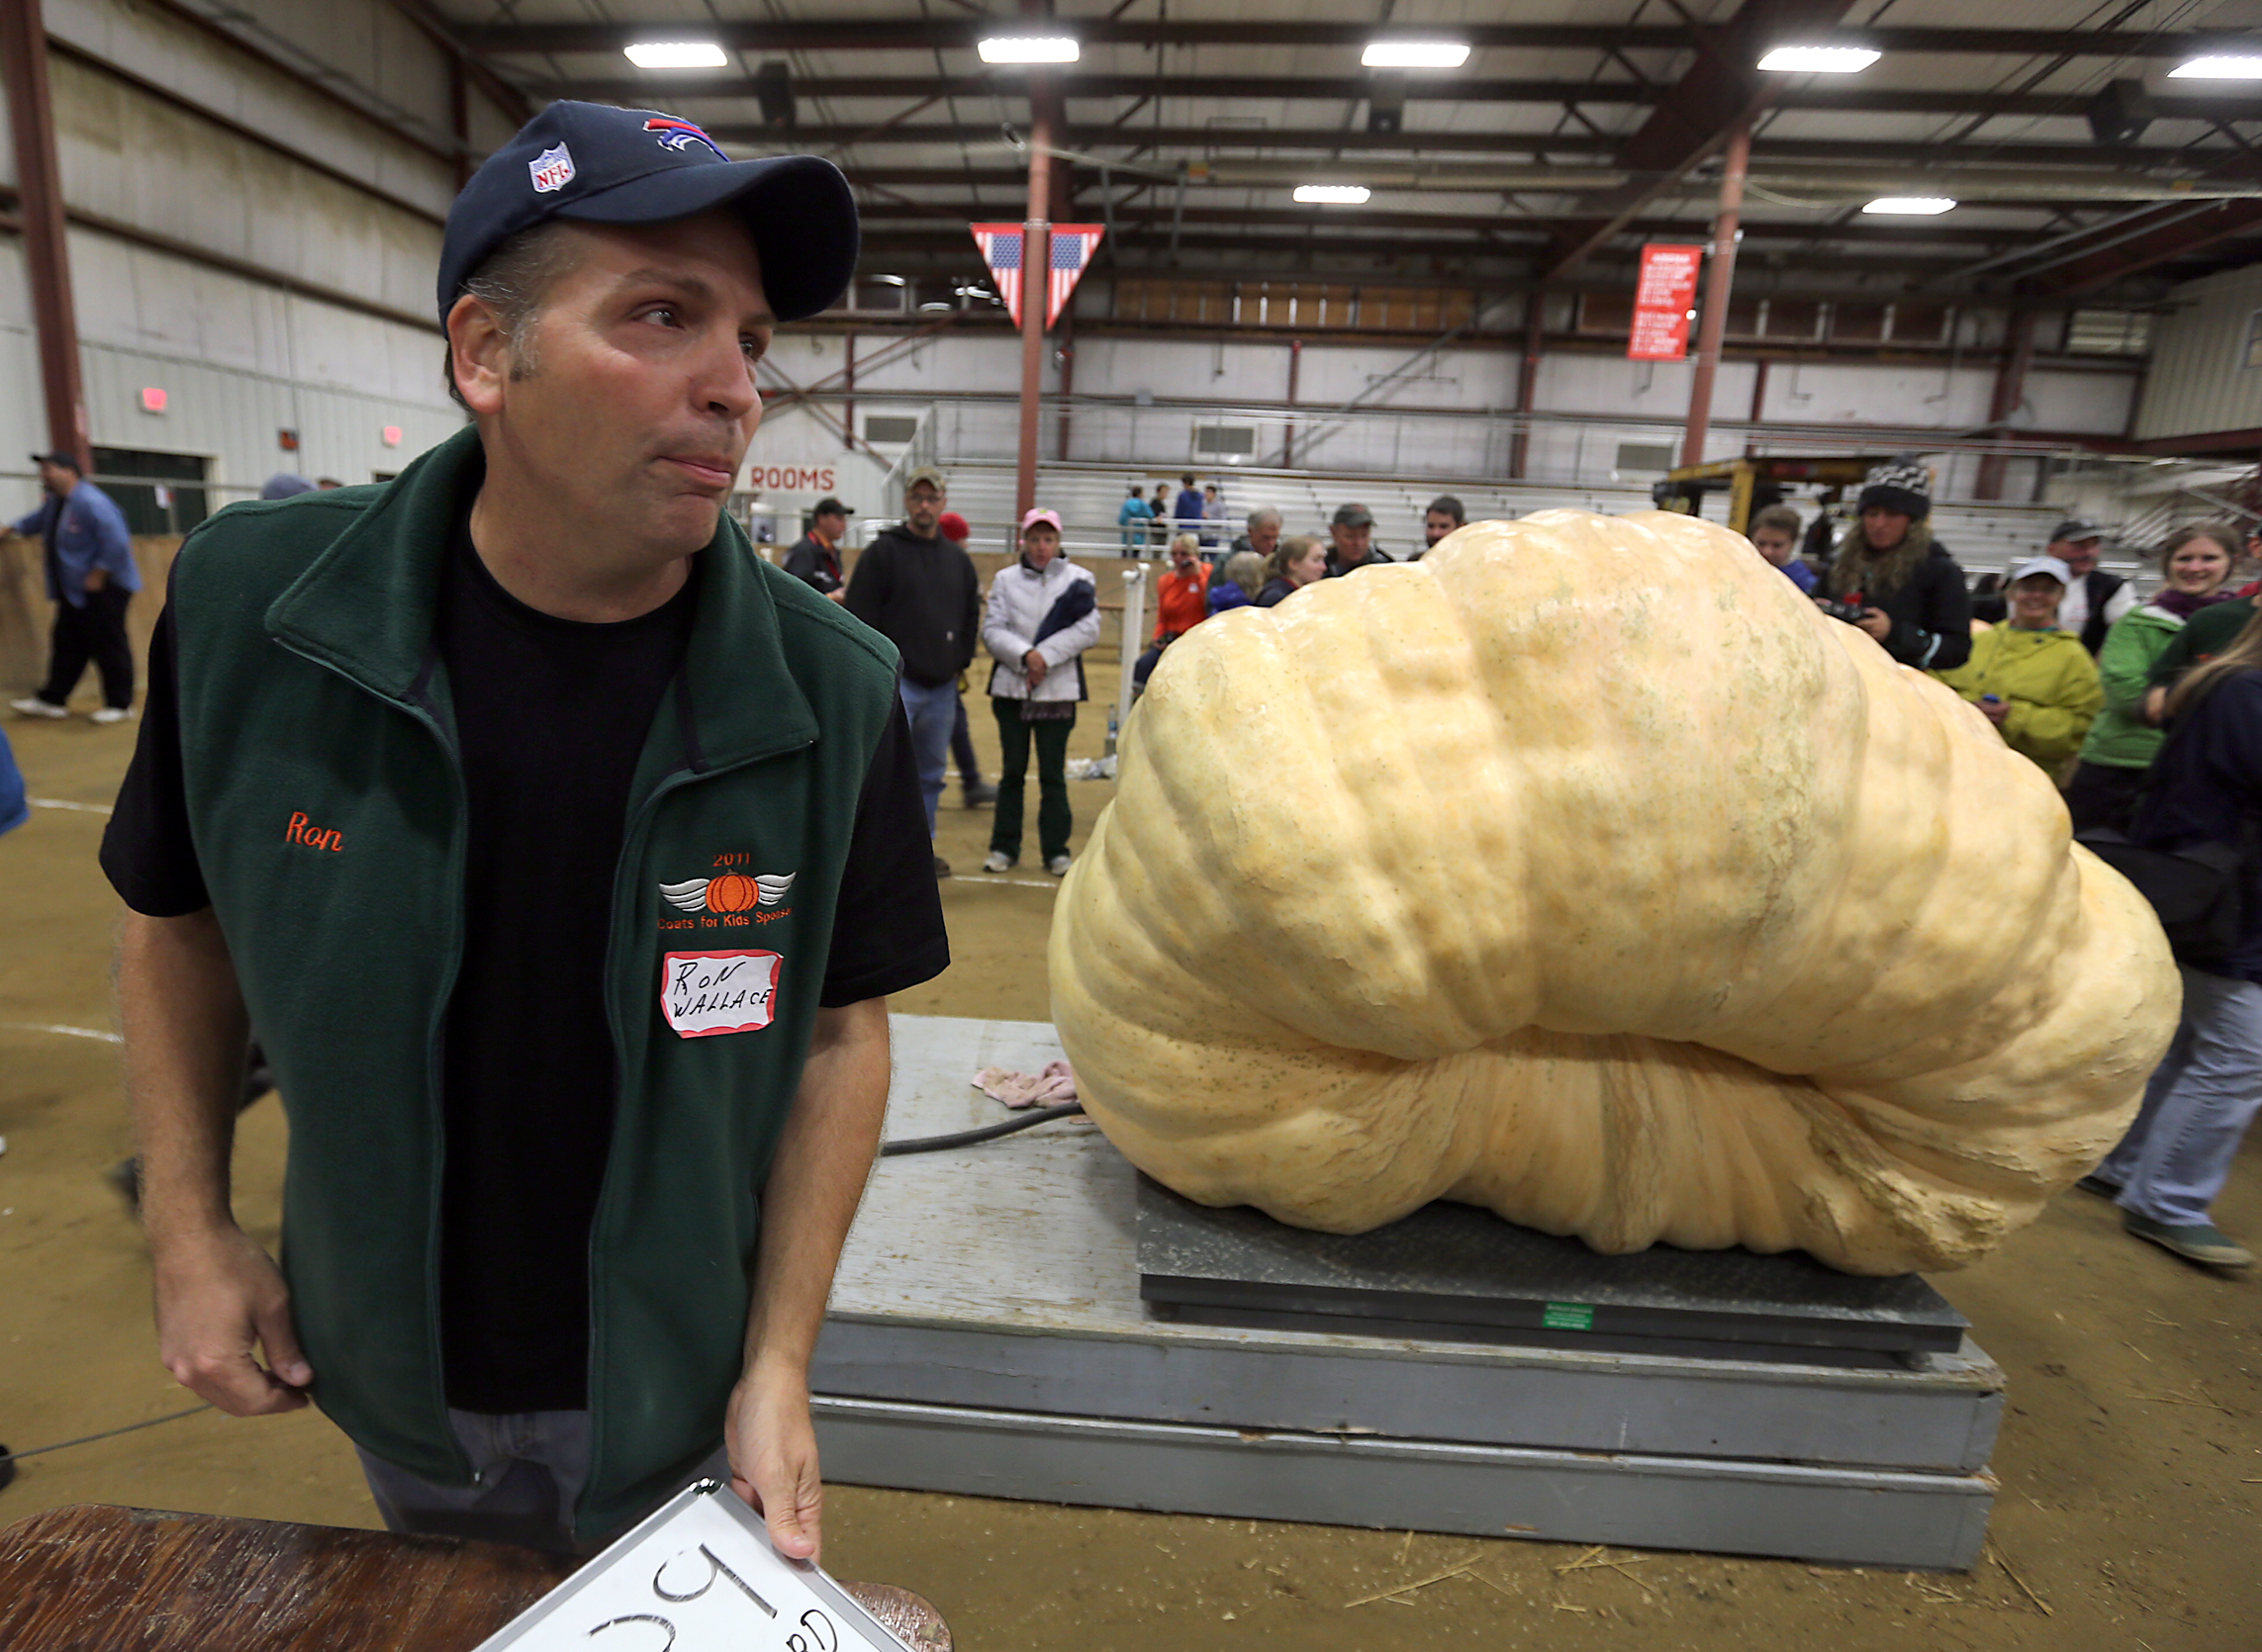 2,009lb Pumpkin Sets Record For The Largest In The World